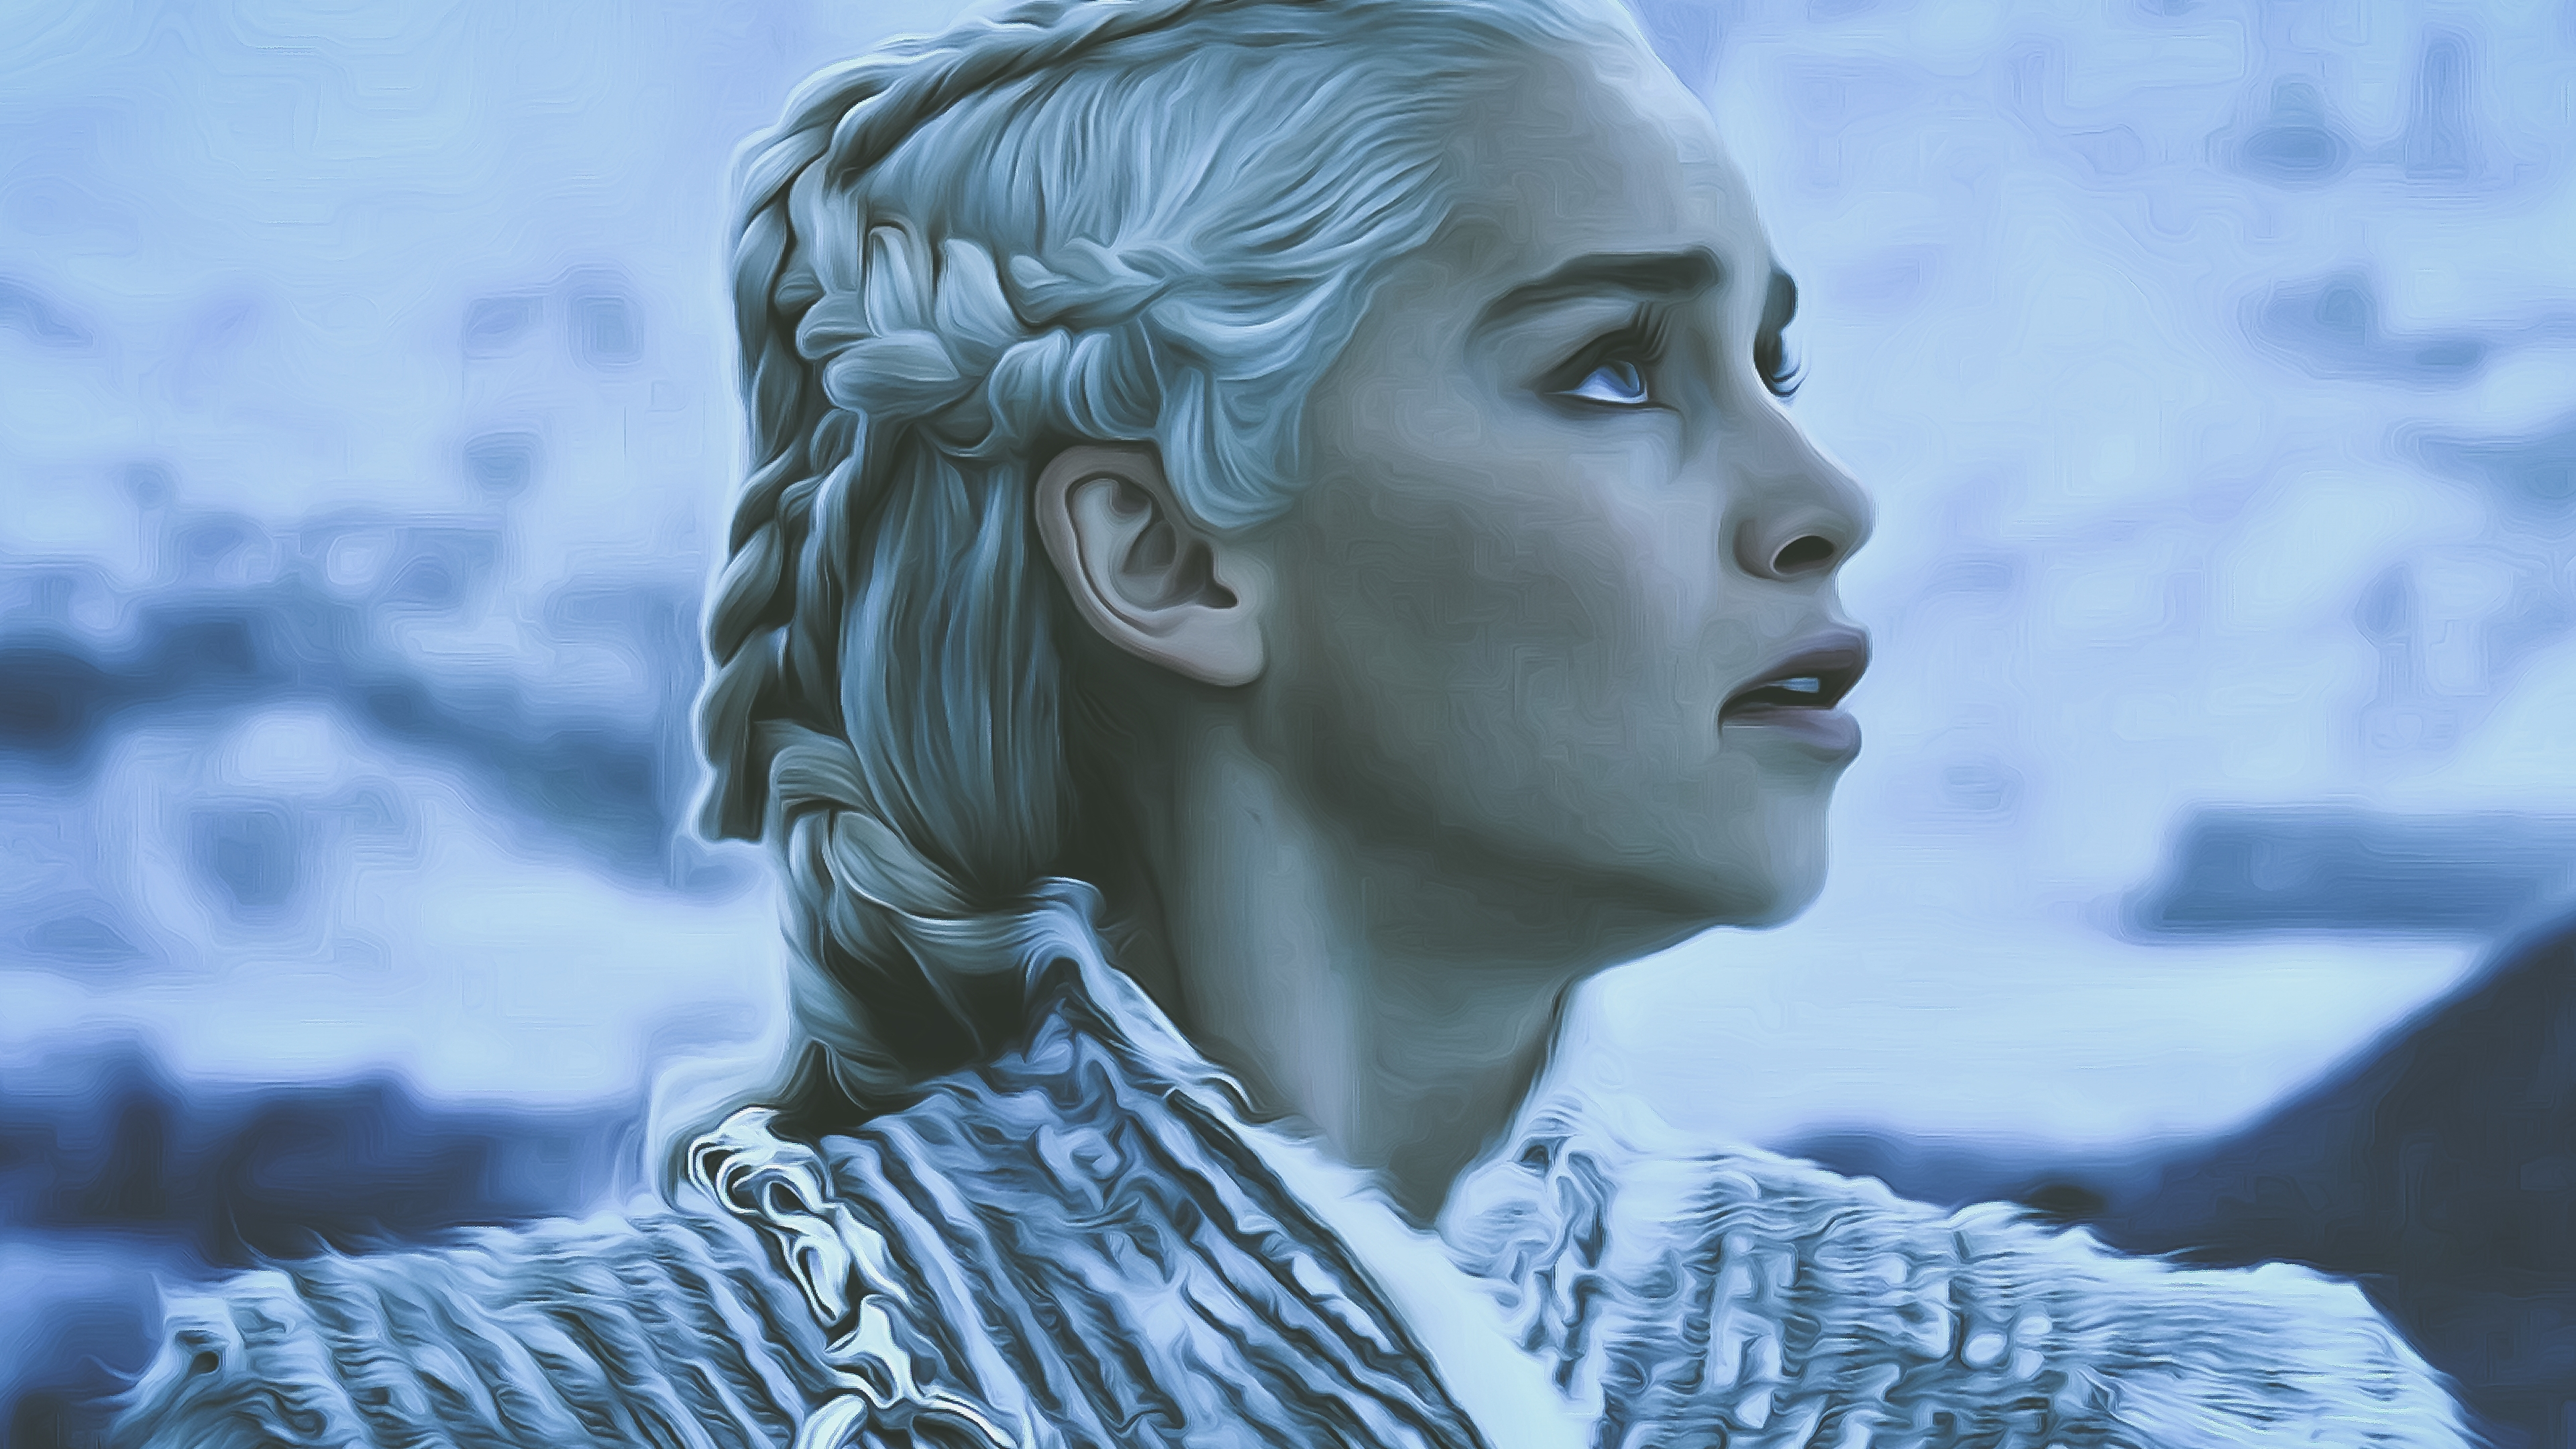 Game Of Thrones Ultra Hd 4k Wallpapers - Game Of Thrones Season 8 4k - HD Wallpaper